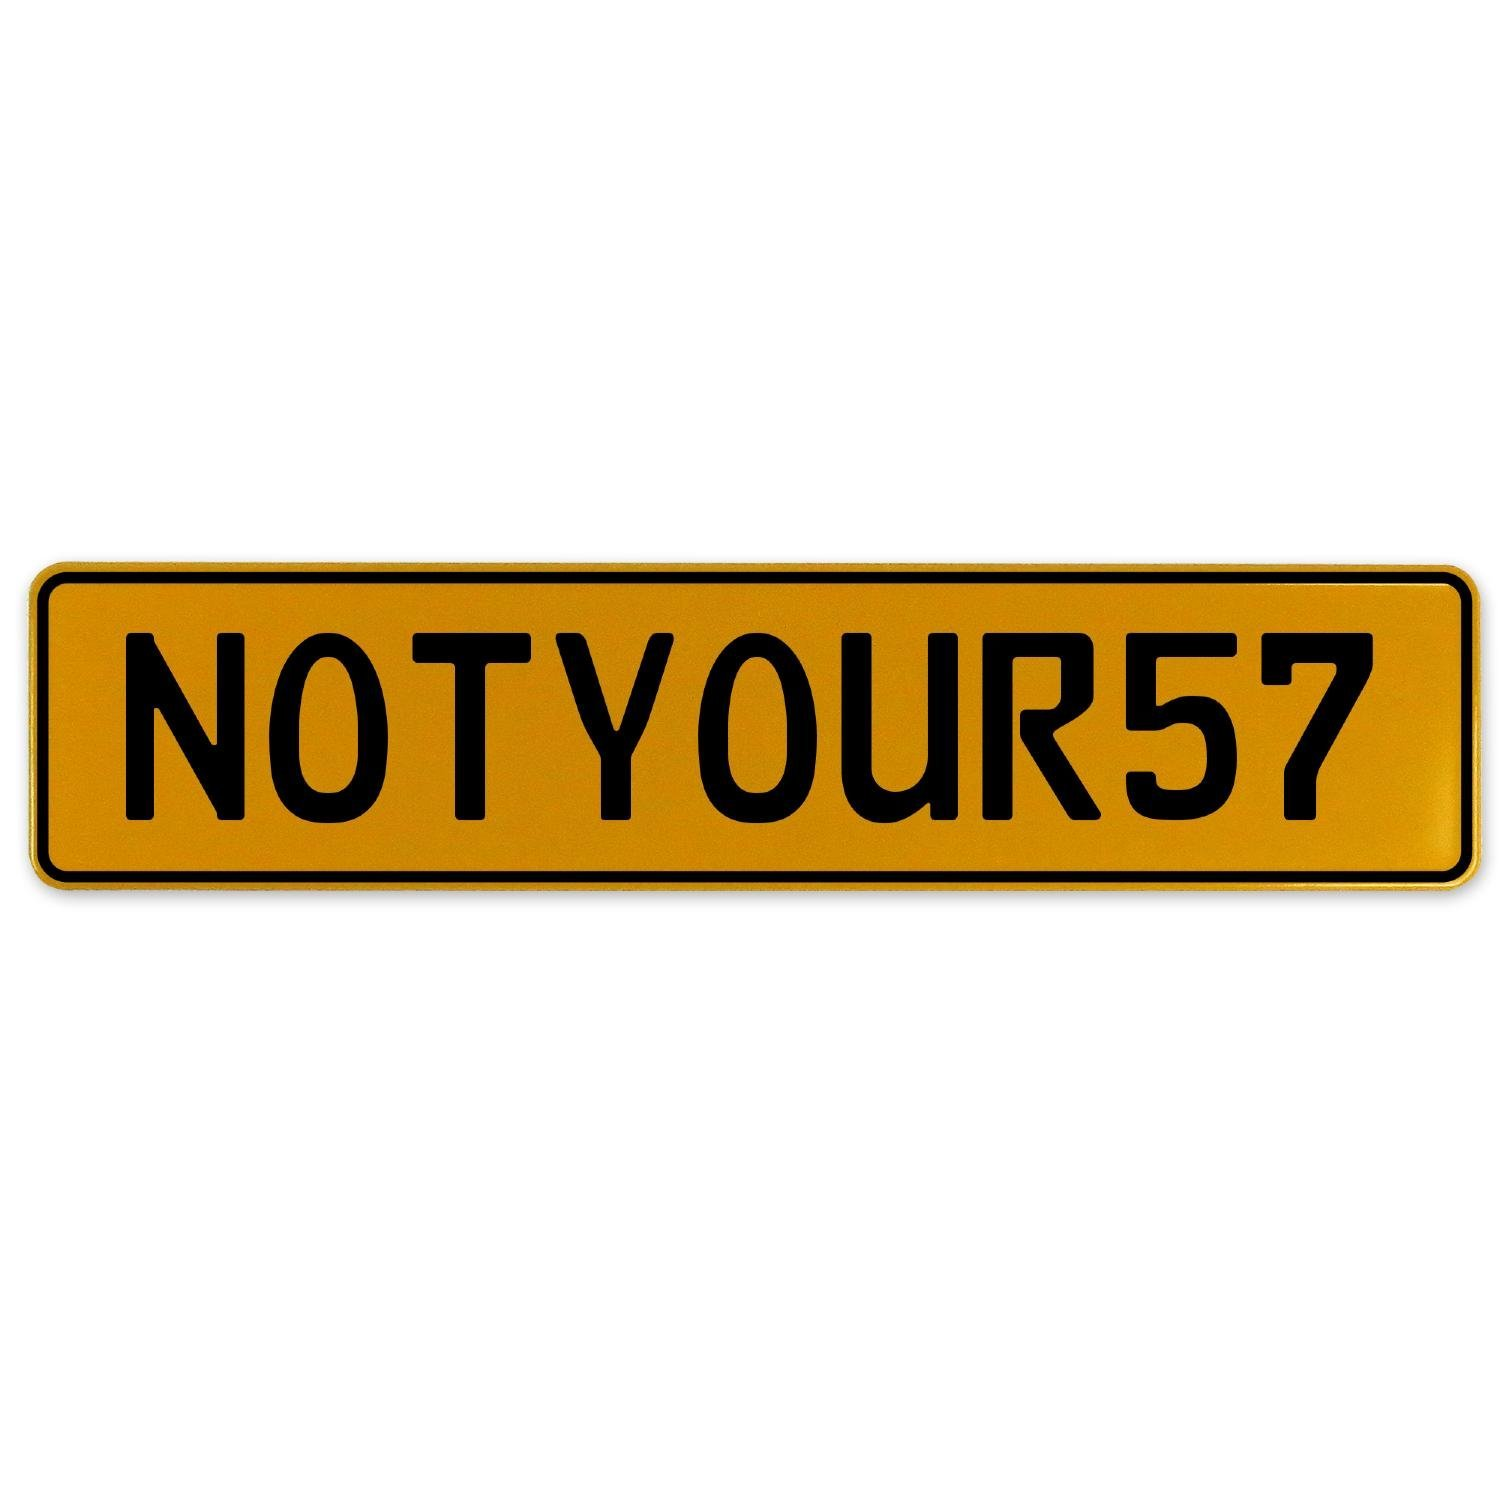 Vintage Parts 560495 NOTYOUR57 Yellow Stamped Aluminum European Plate